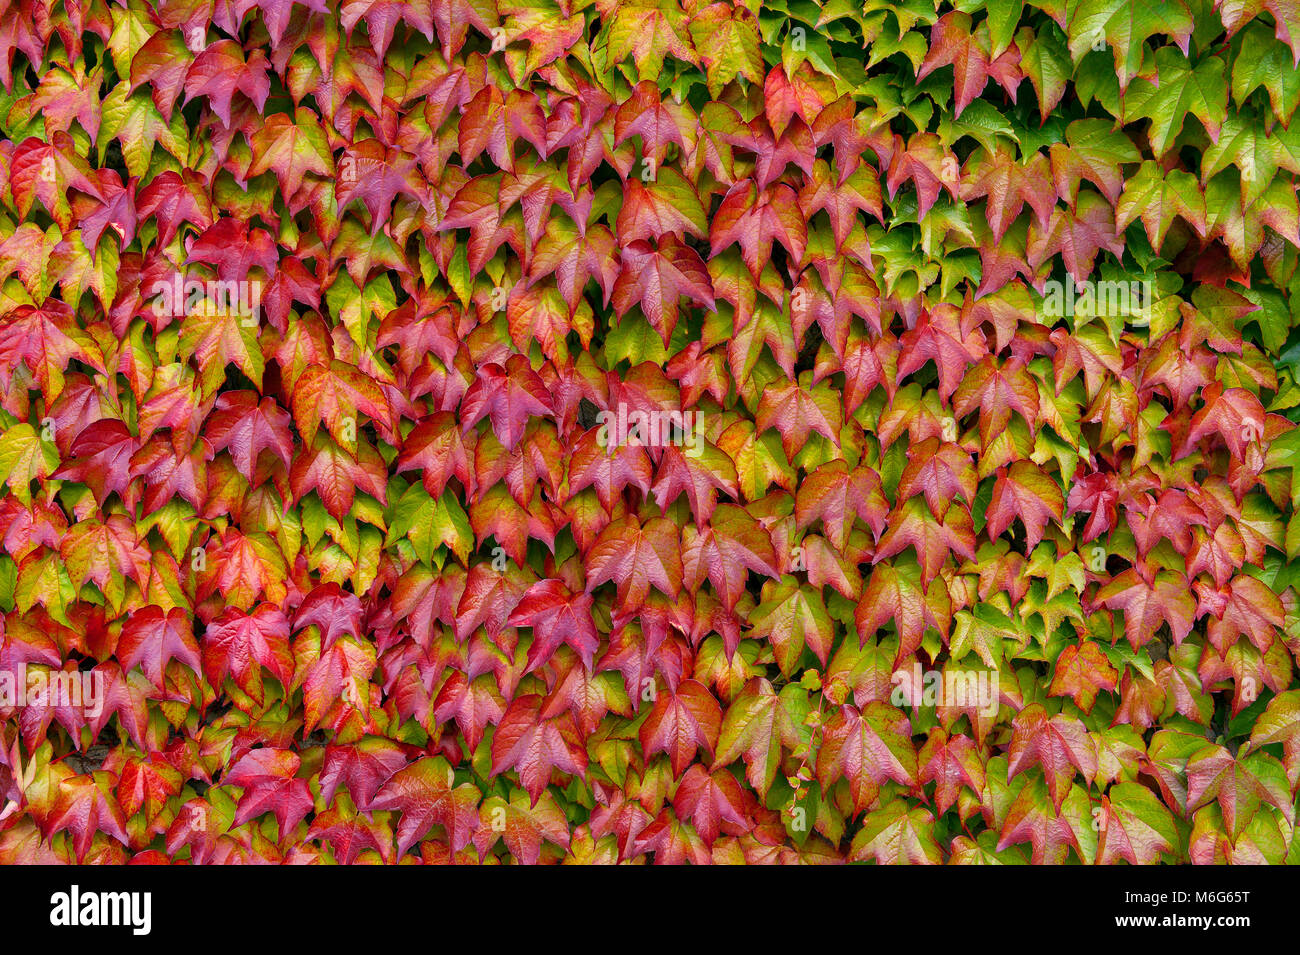 boston ivy parthenocissus tricuspidata veitchii mill valley stock photo 176147716 alamy. Black Bedroom Furniture Sets. Home Design Ideas